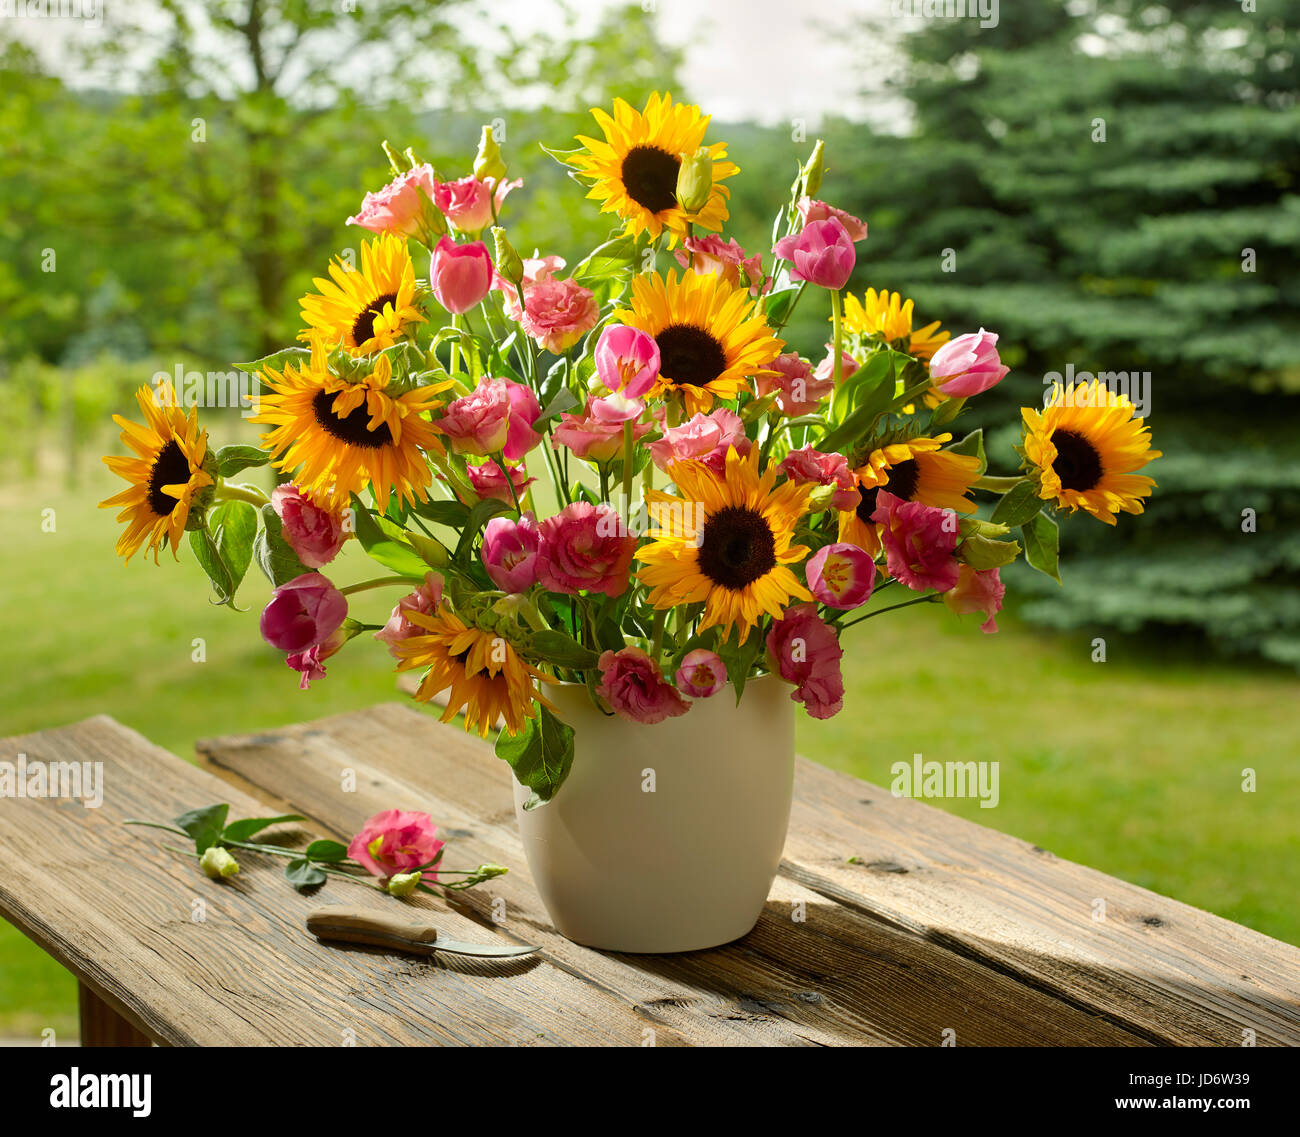 Bouquet Of Flowers With Sunflowers And Tulips Stock Photo